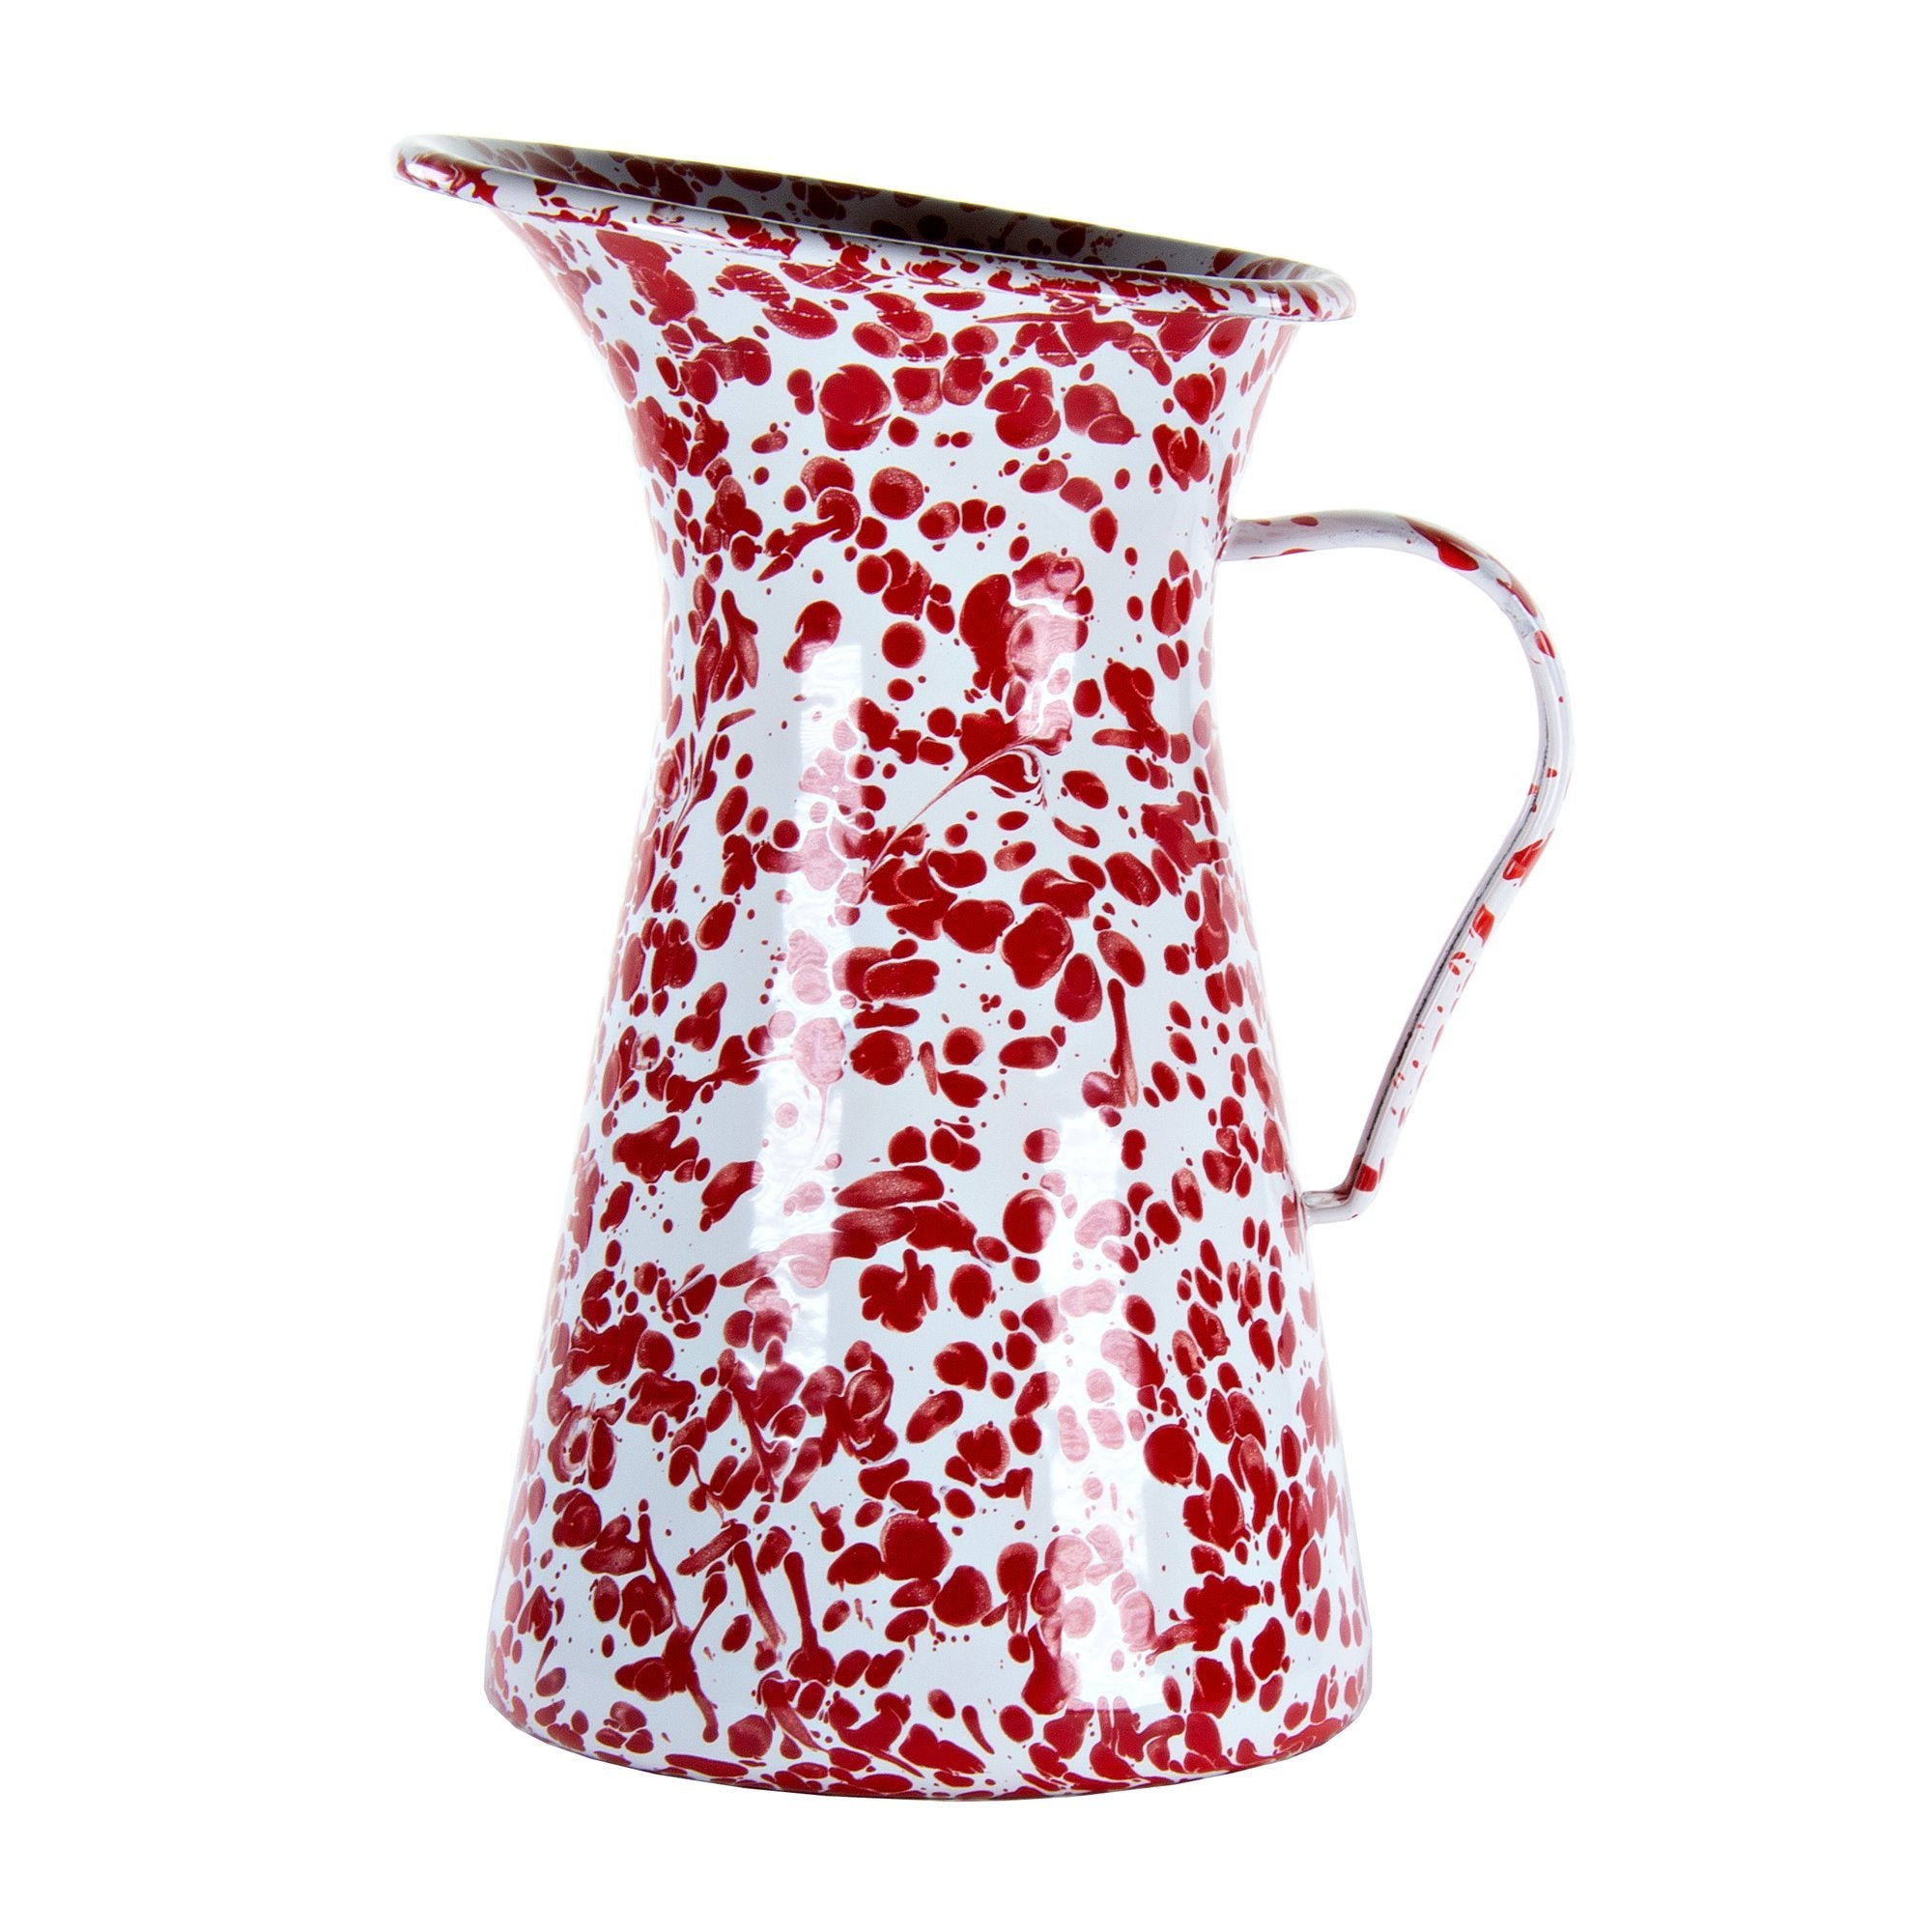 RD63 - Red Swirl - Enamelware- Large Pitcher by Golden Rabbit